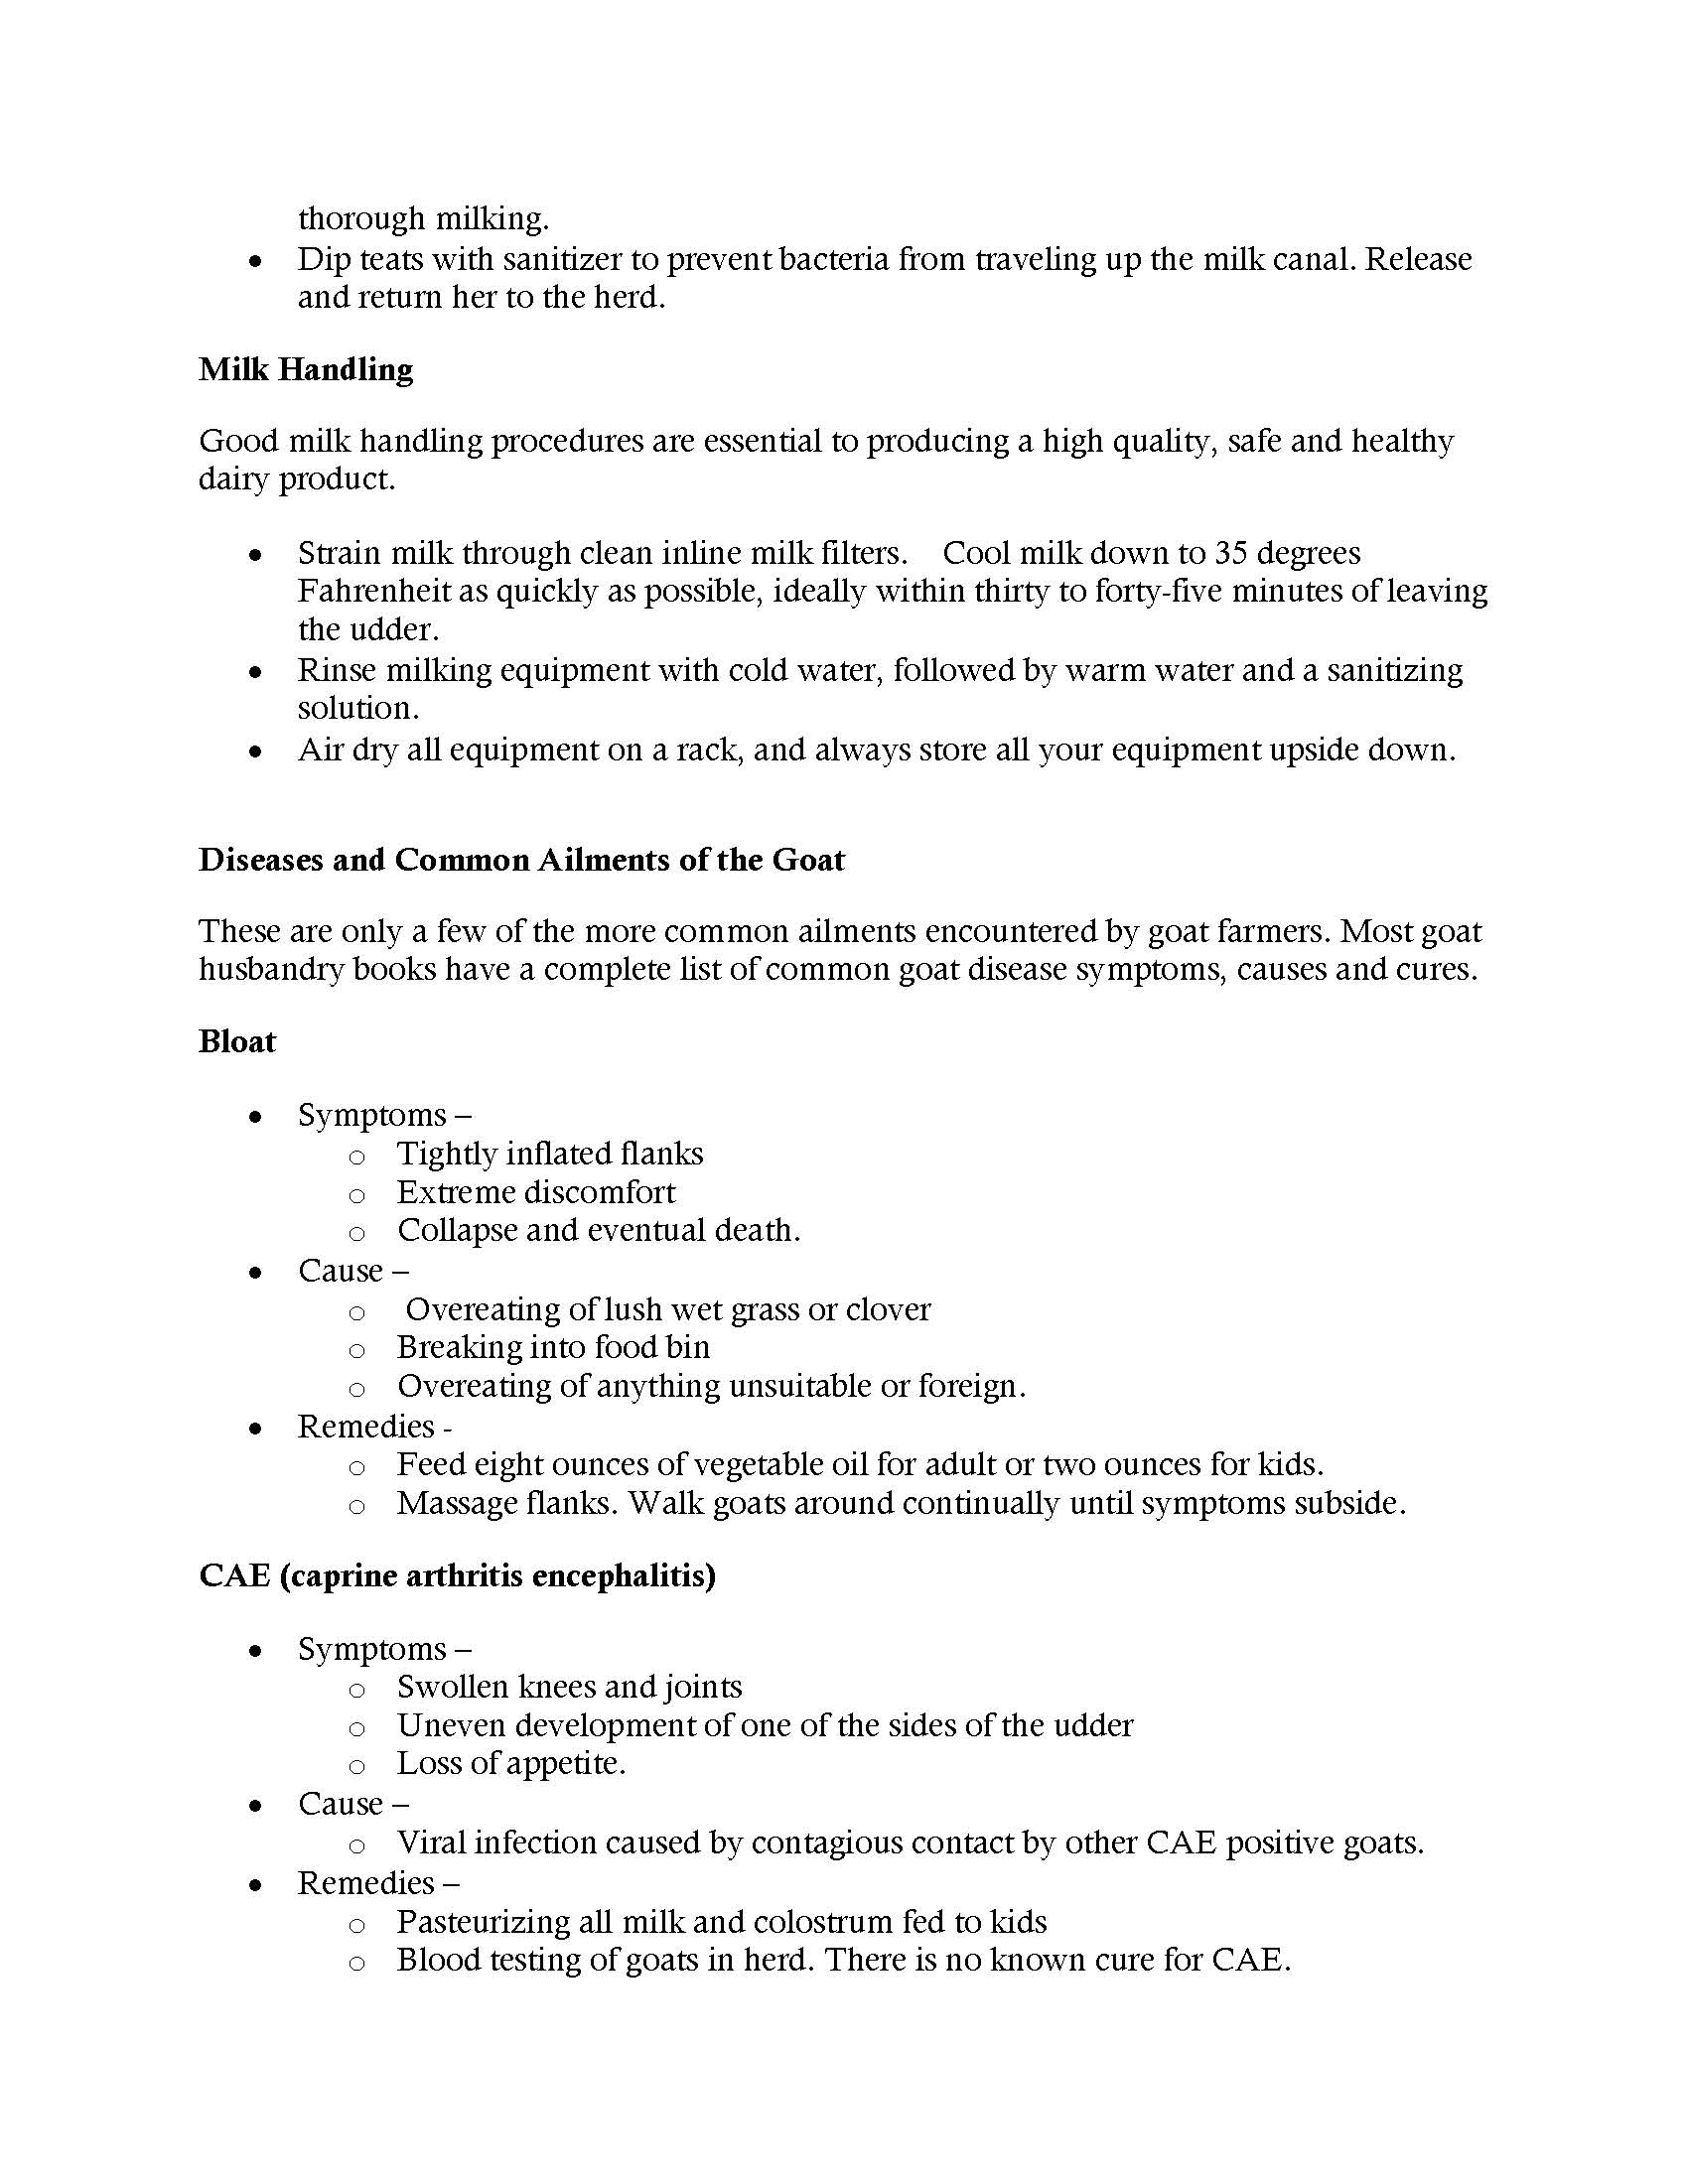 RFC Class Outlines_Page_06.jpg